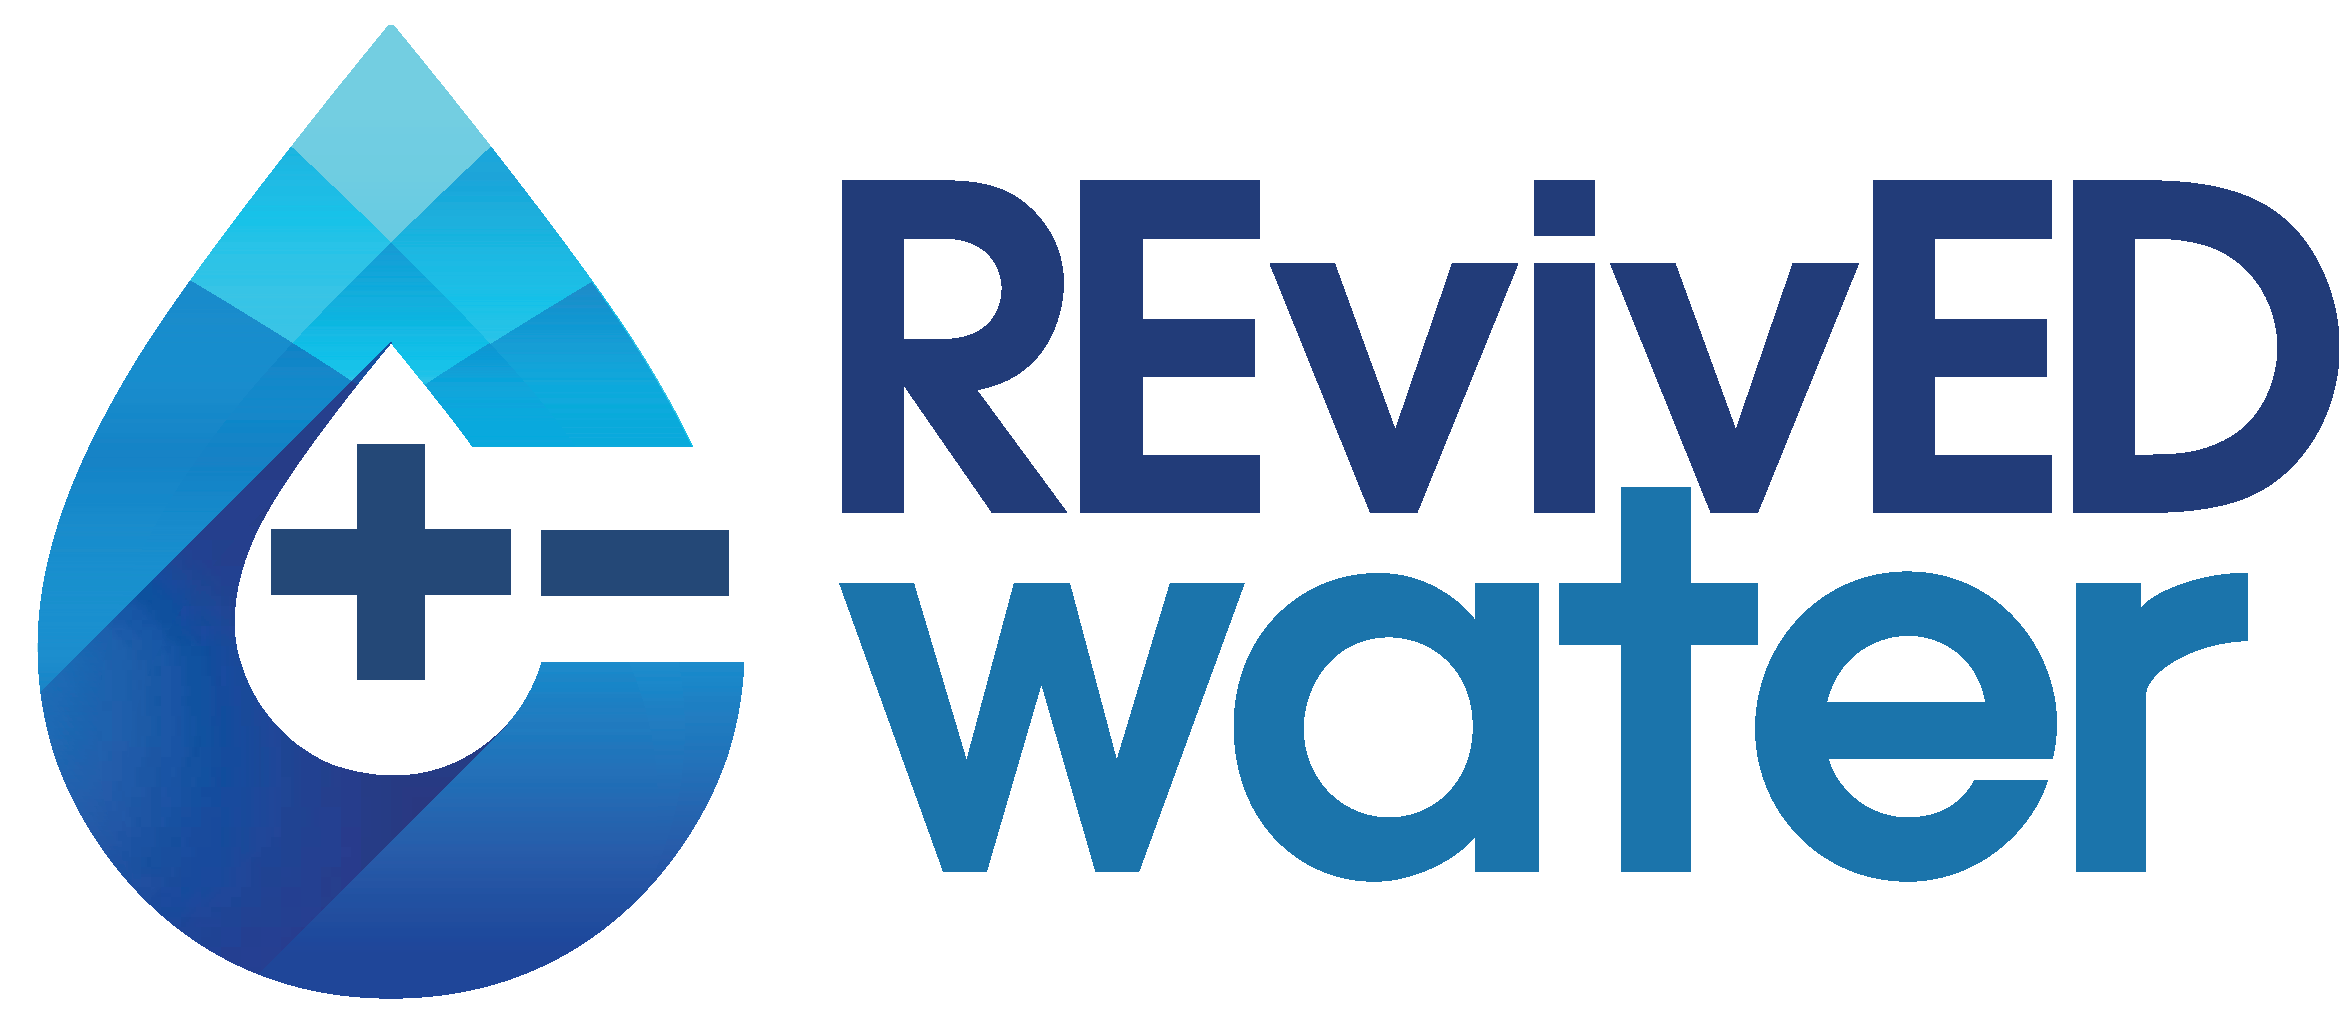 REvivEDwater FullColourLogo